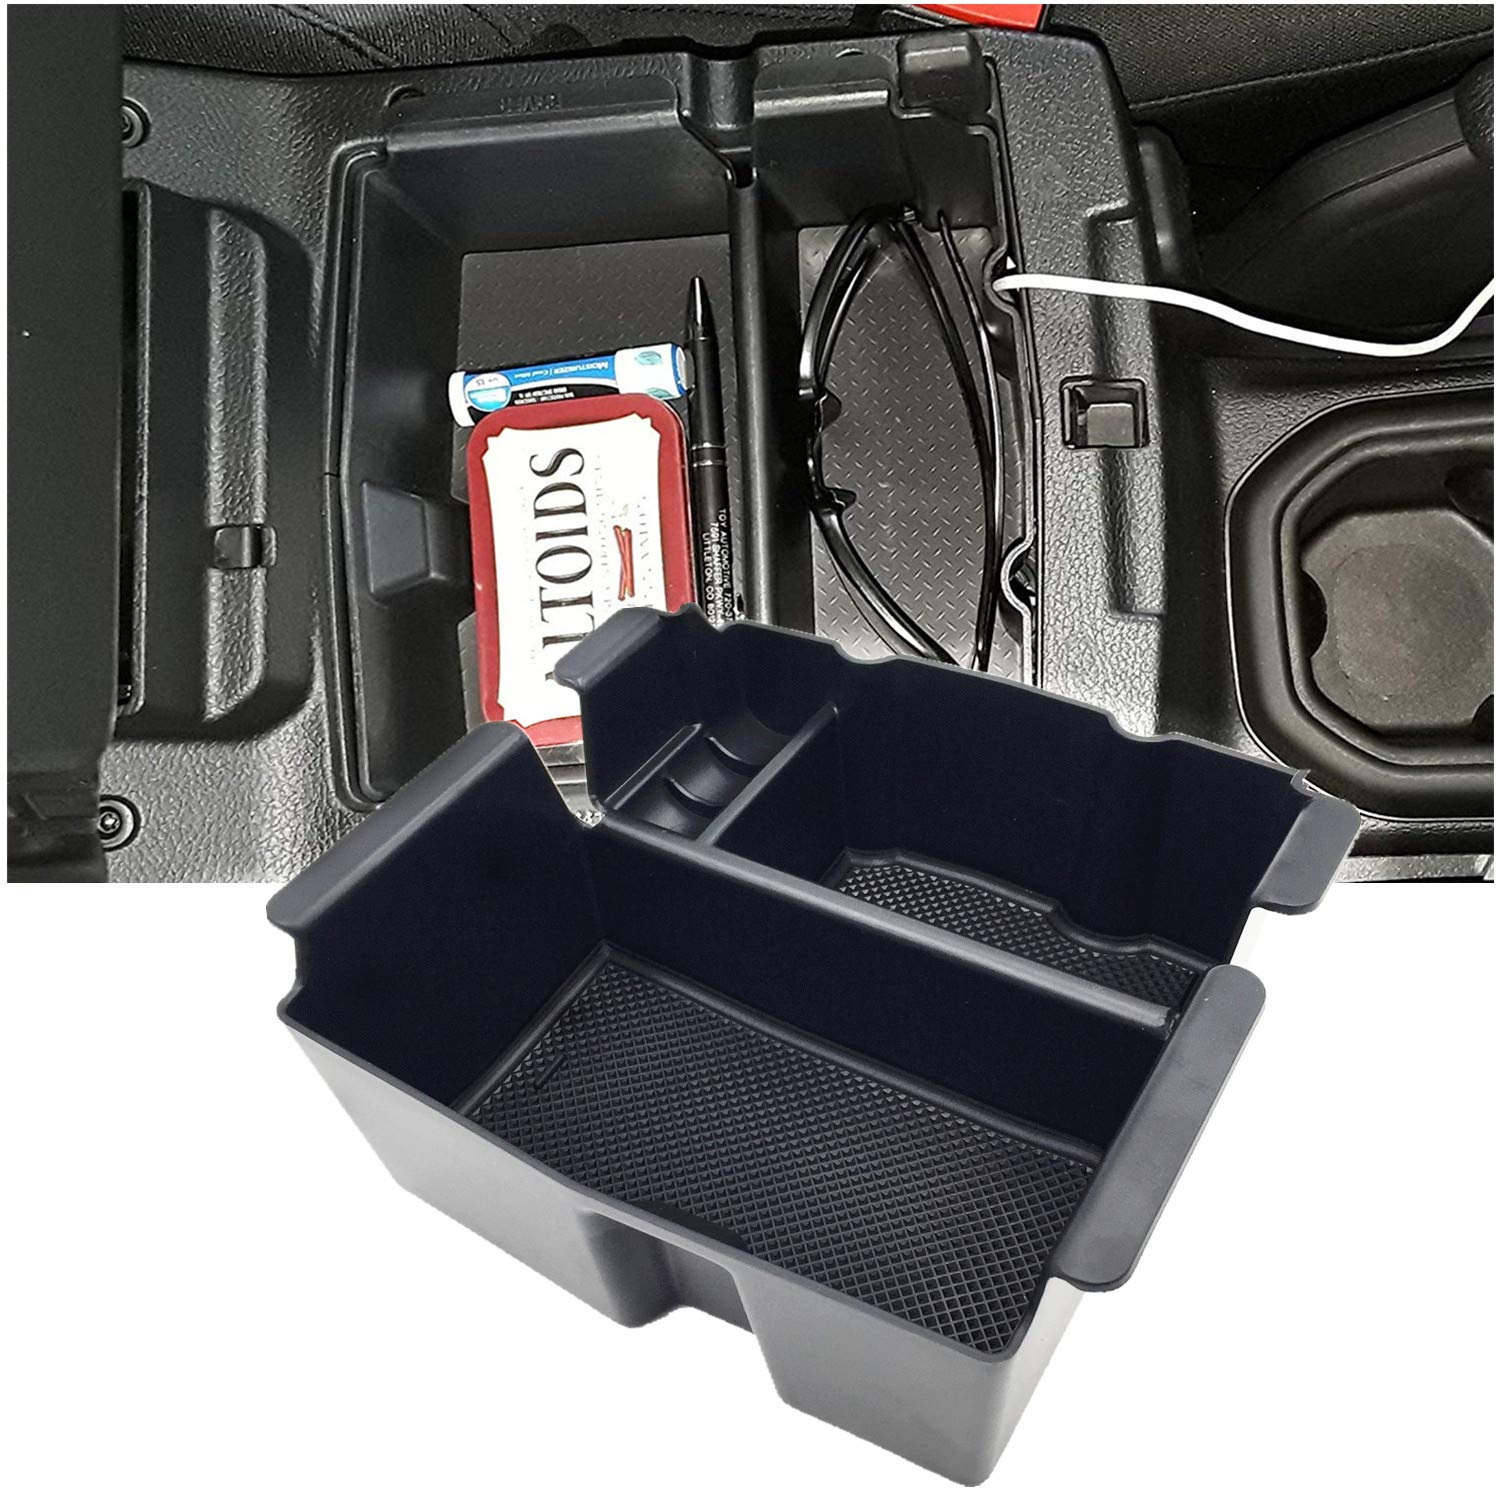 JOJOMARK for 2018 2019 Jeep Wrangler JL and JLU Accessories Center Console Organizer Tray Also for Jeep Gladiator JT Truck 2020 by JOJOMARK